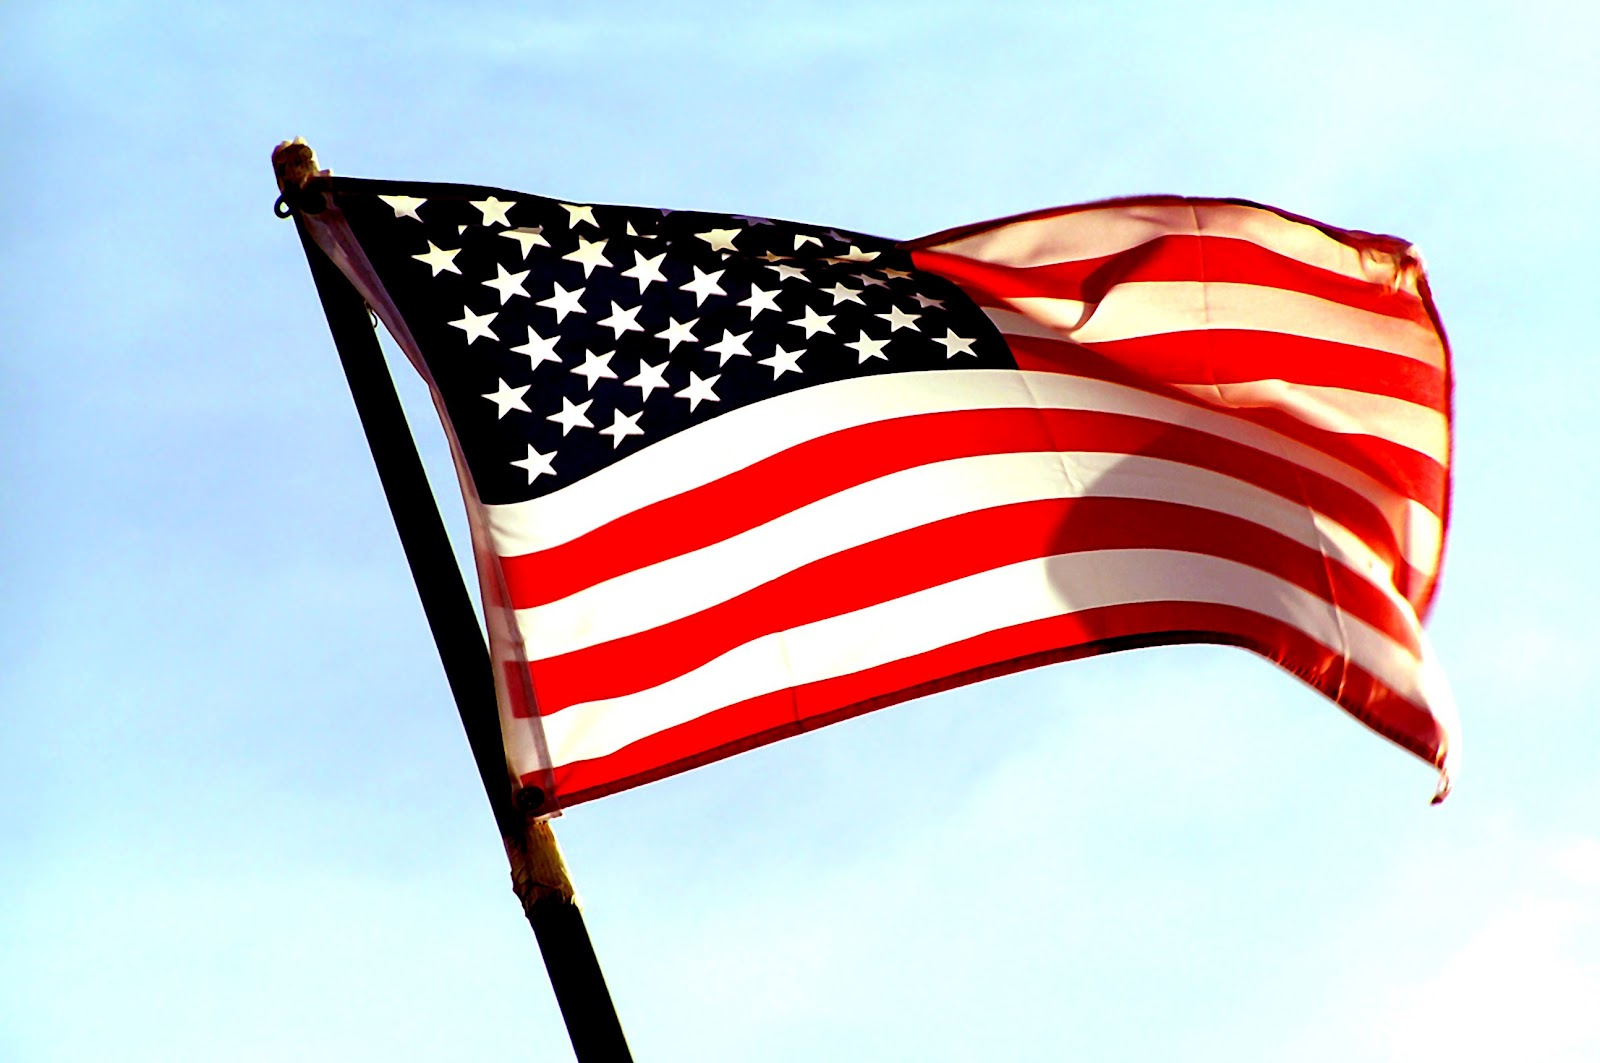 Usa flag wallpapers hd usa flag wallpaper full hd Hd usa